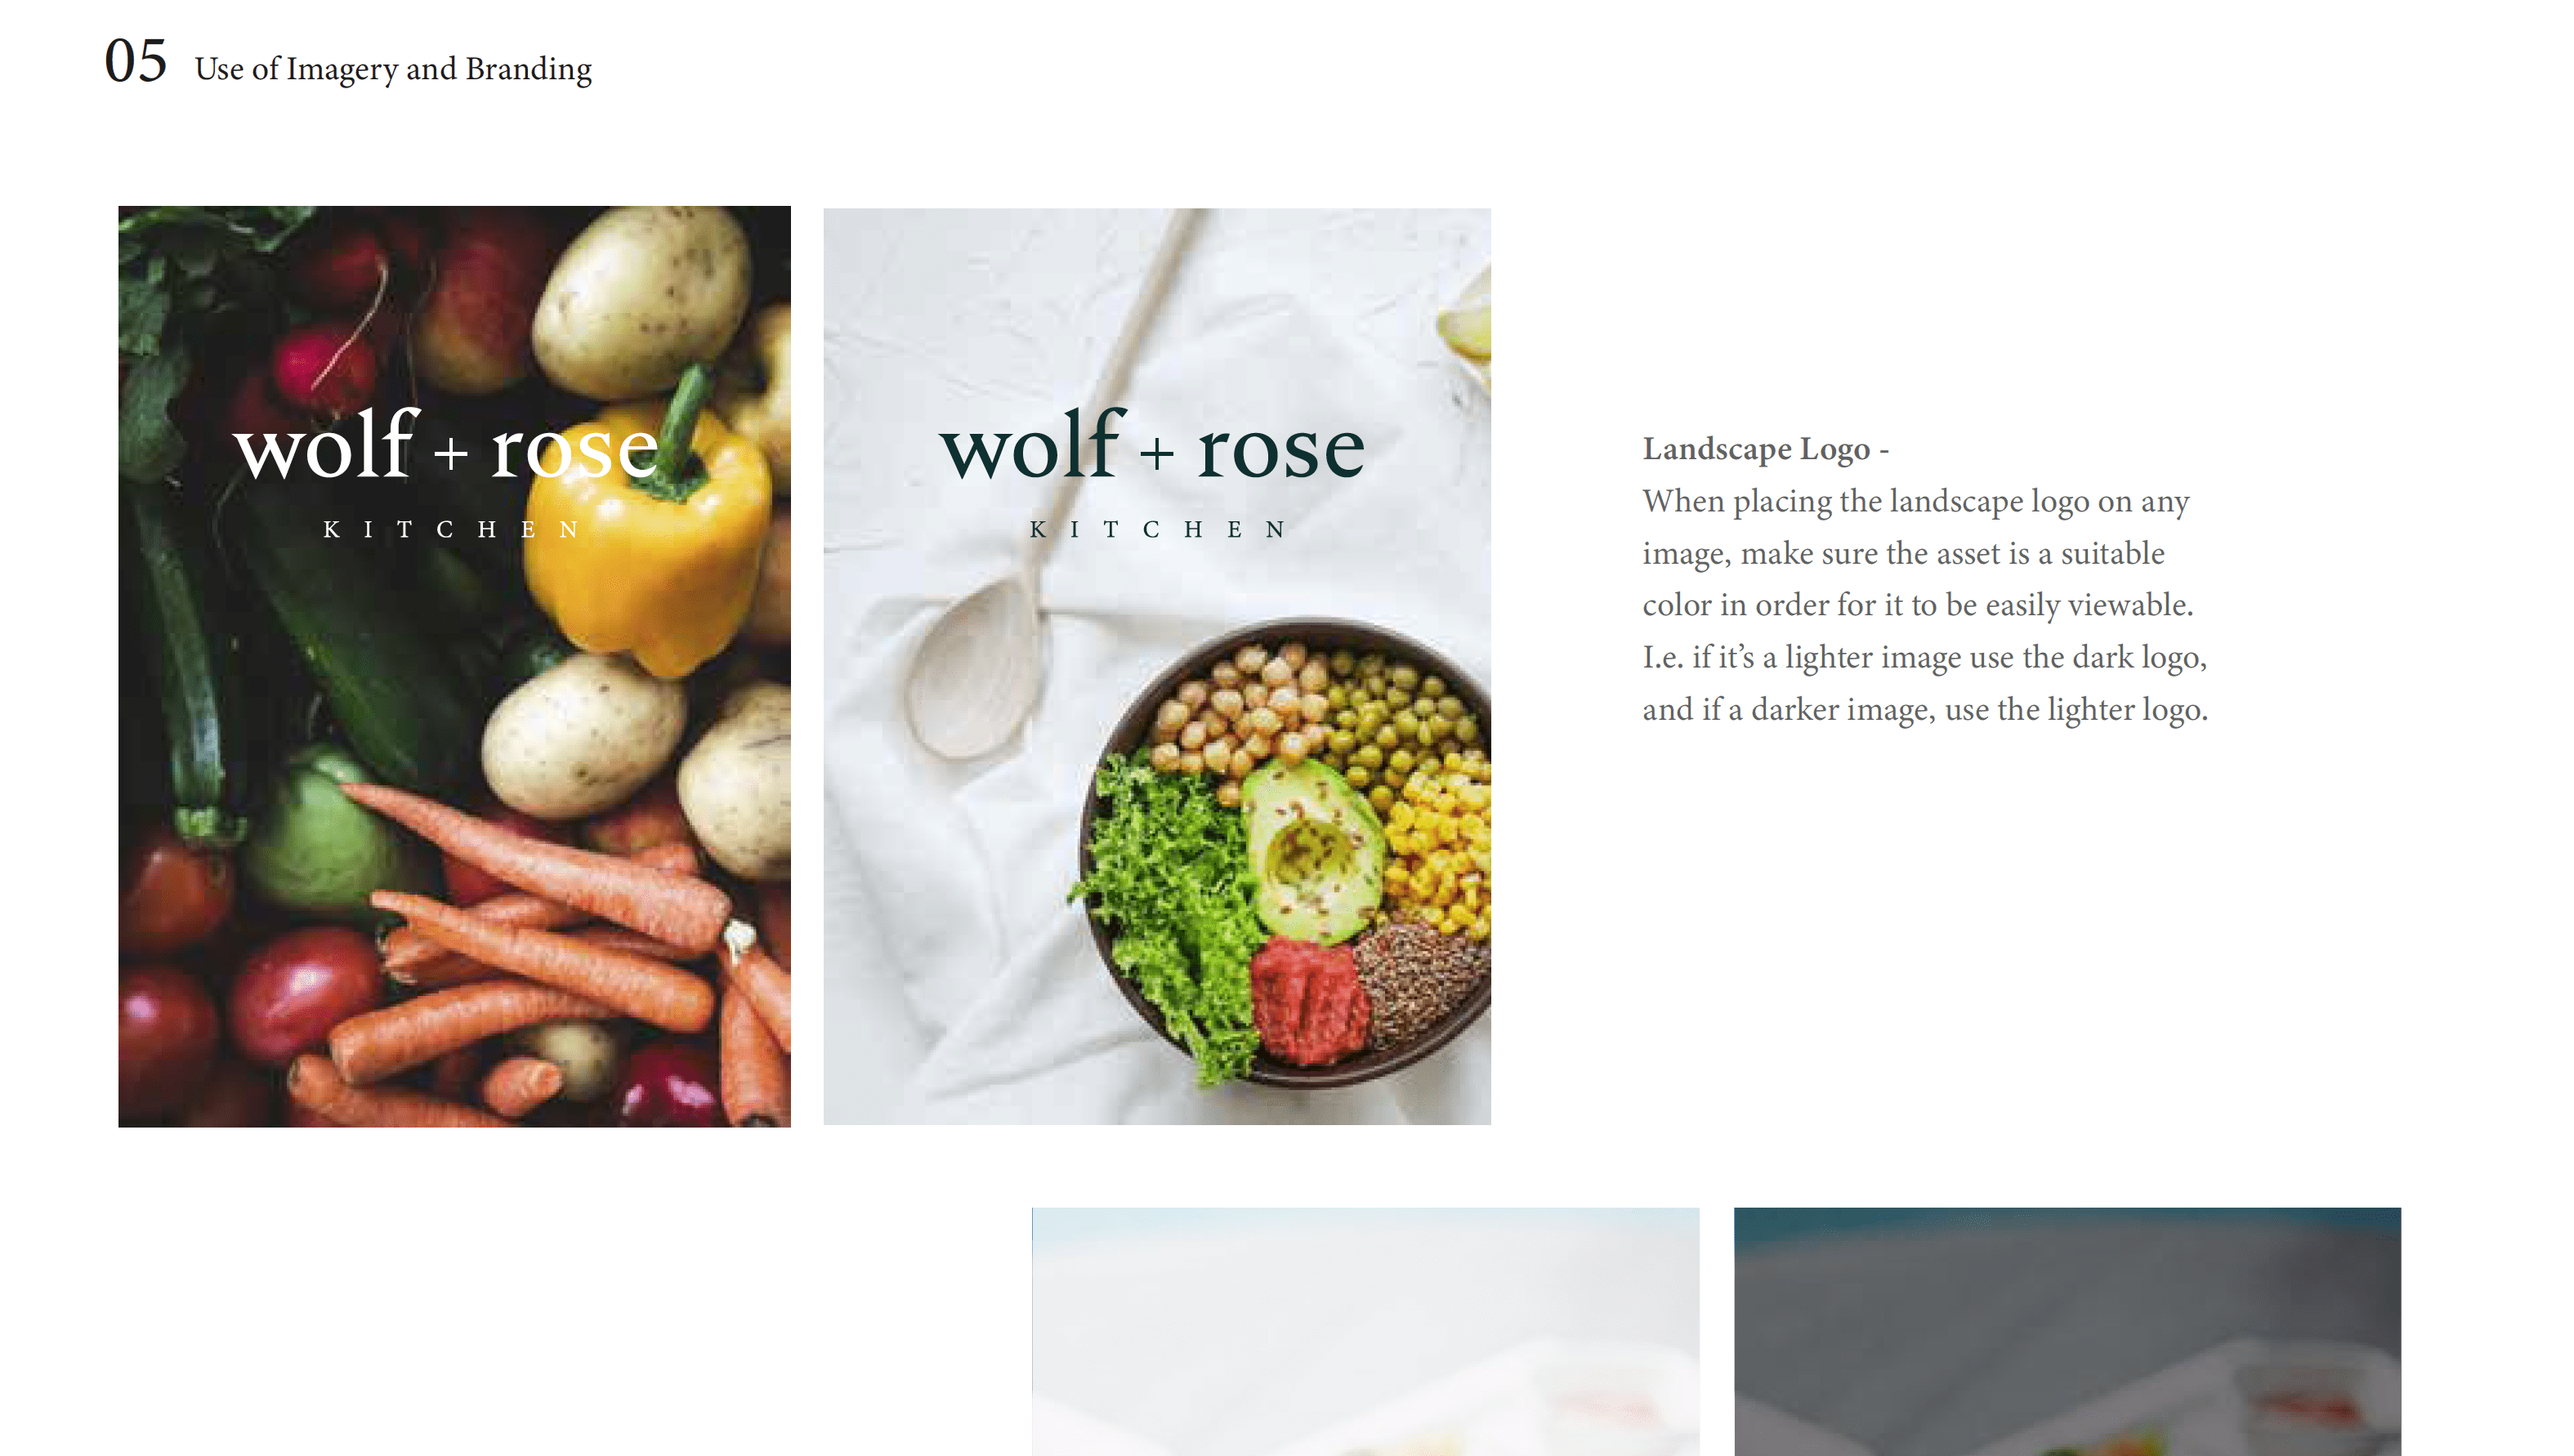 Branding Style Guide for Wolf and Rose - Use of imagery